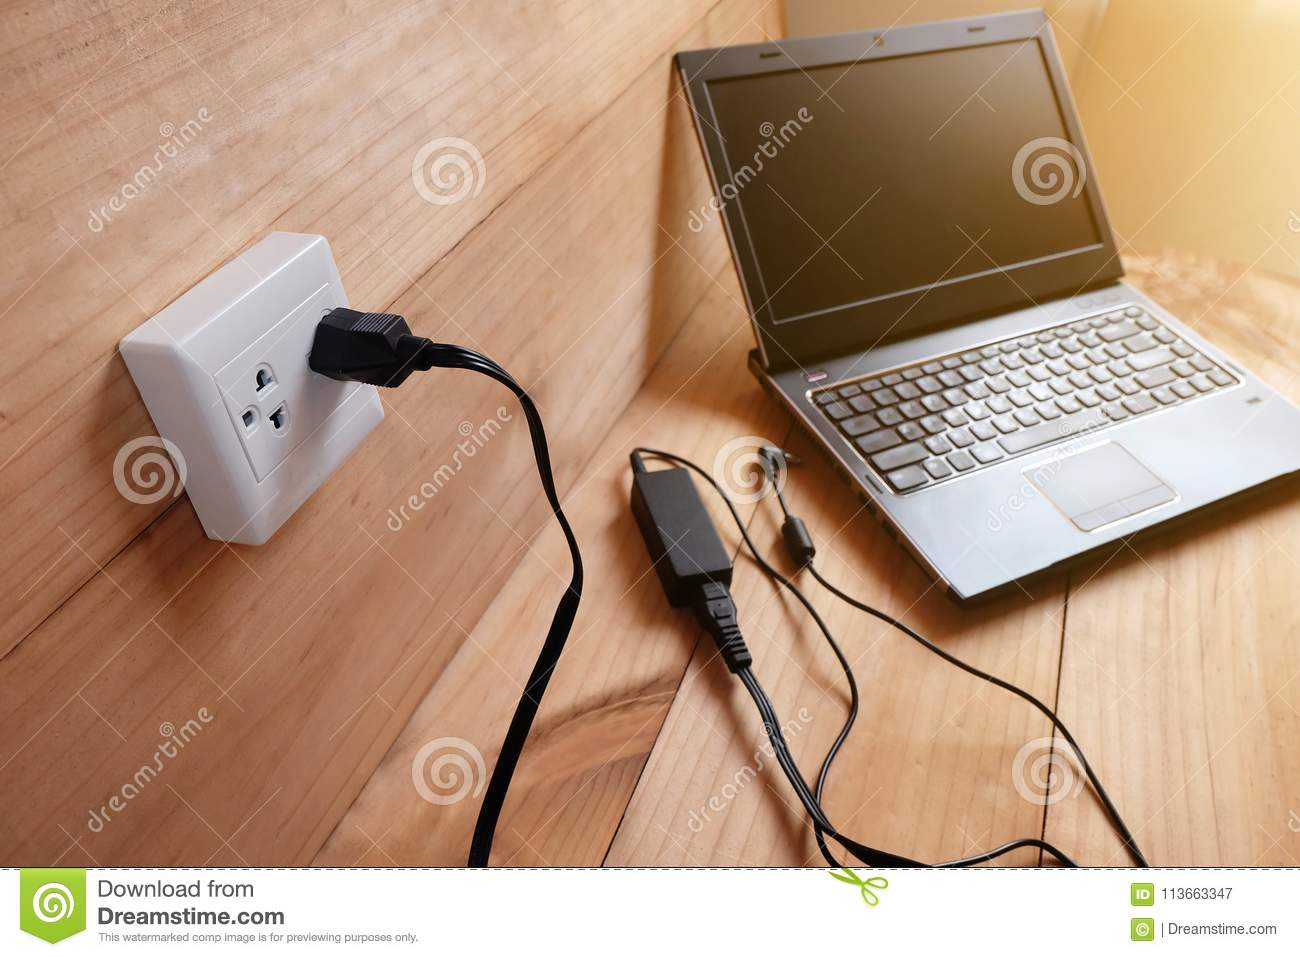 Plug in Adapter power cord charger of laptop computer On wooden floor